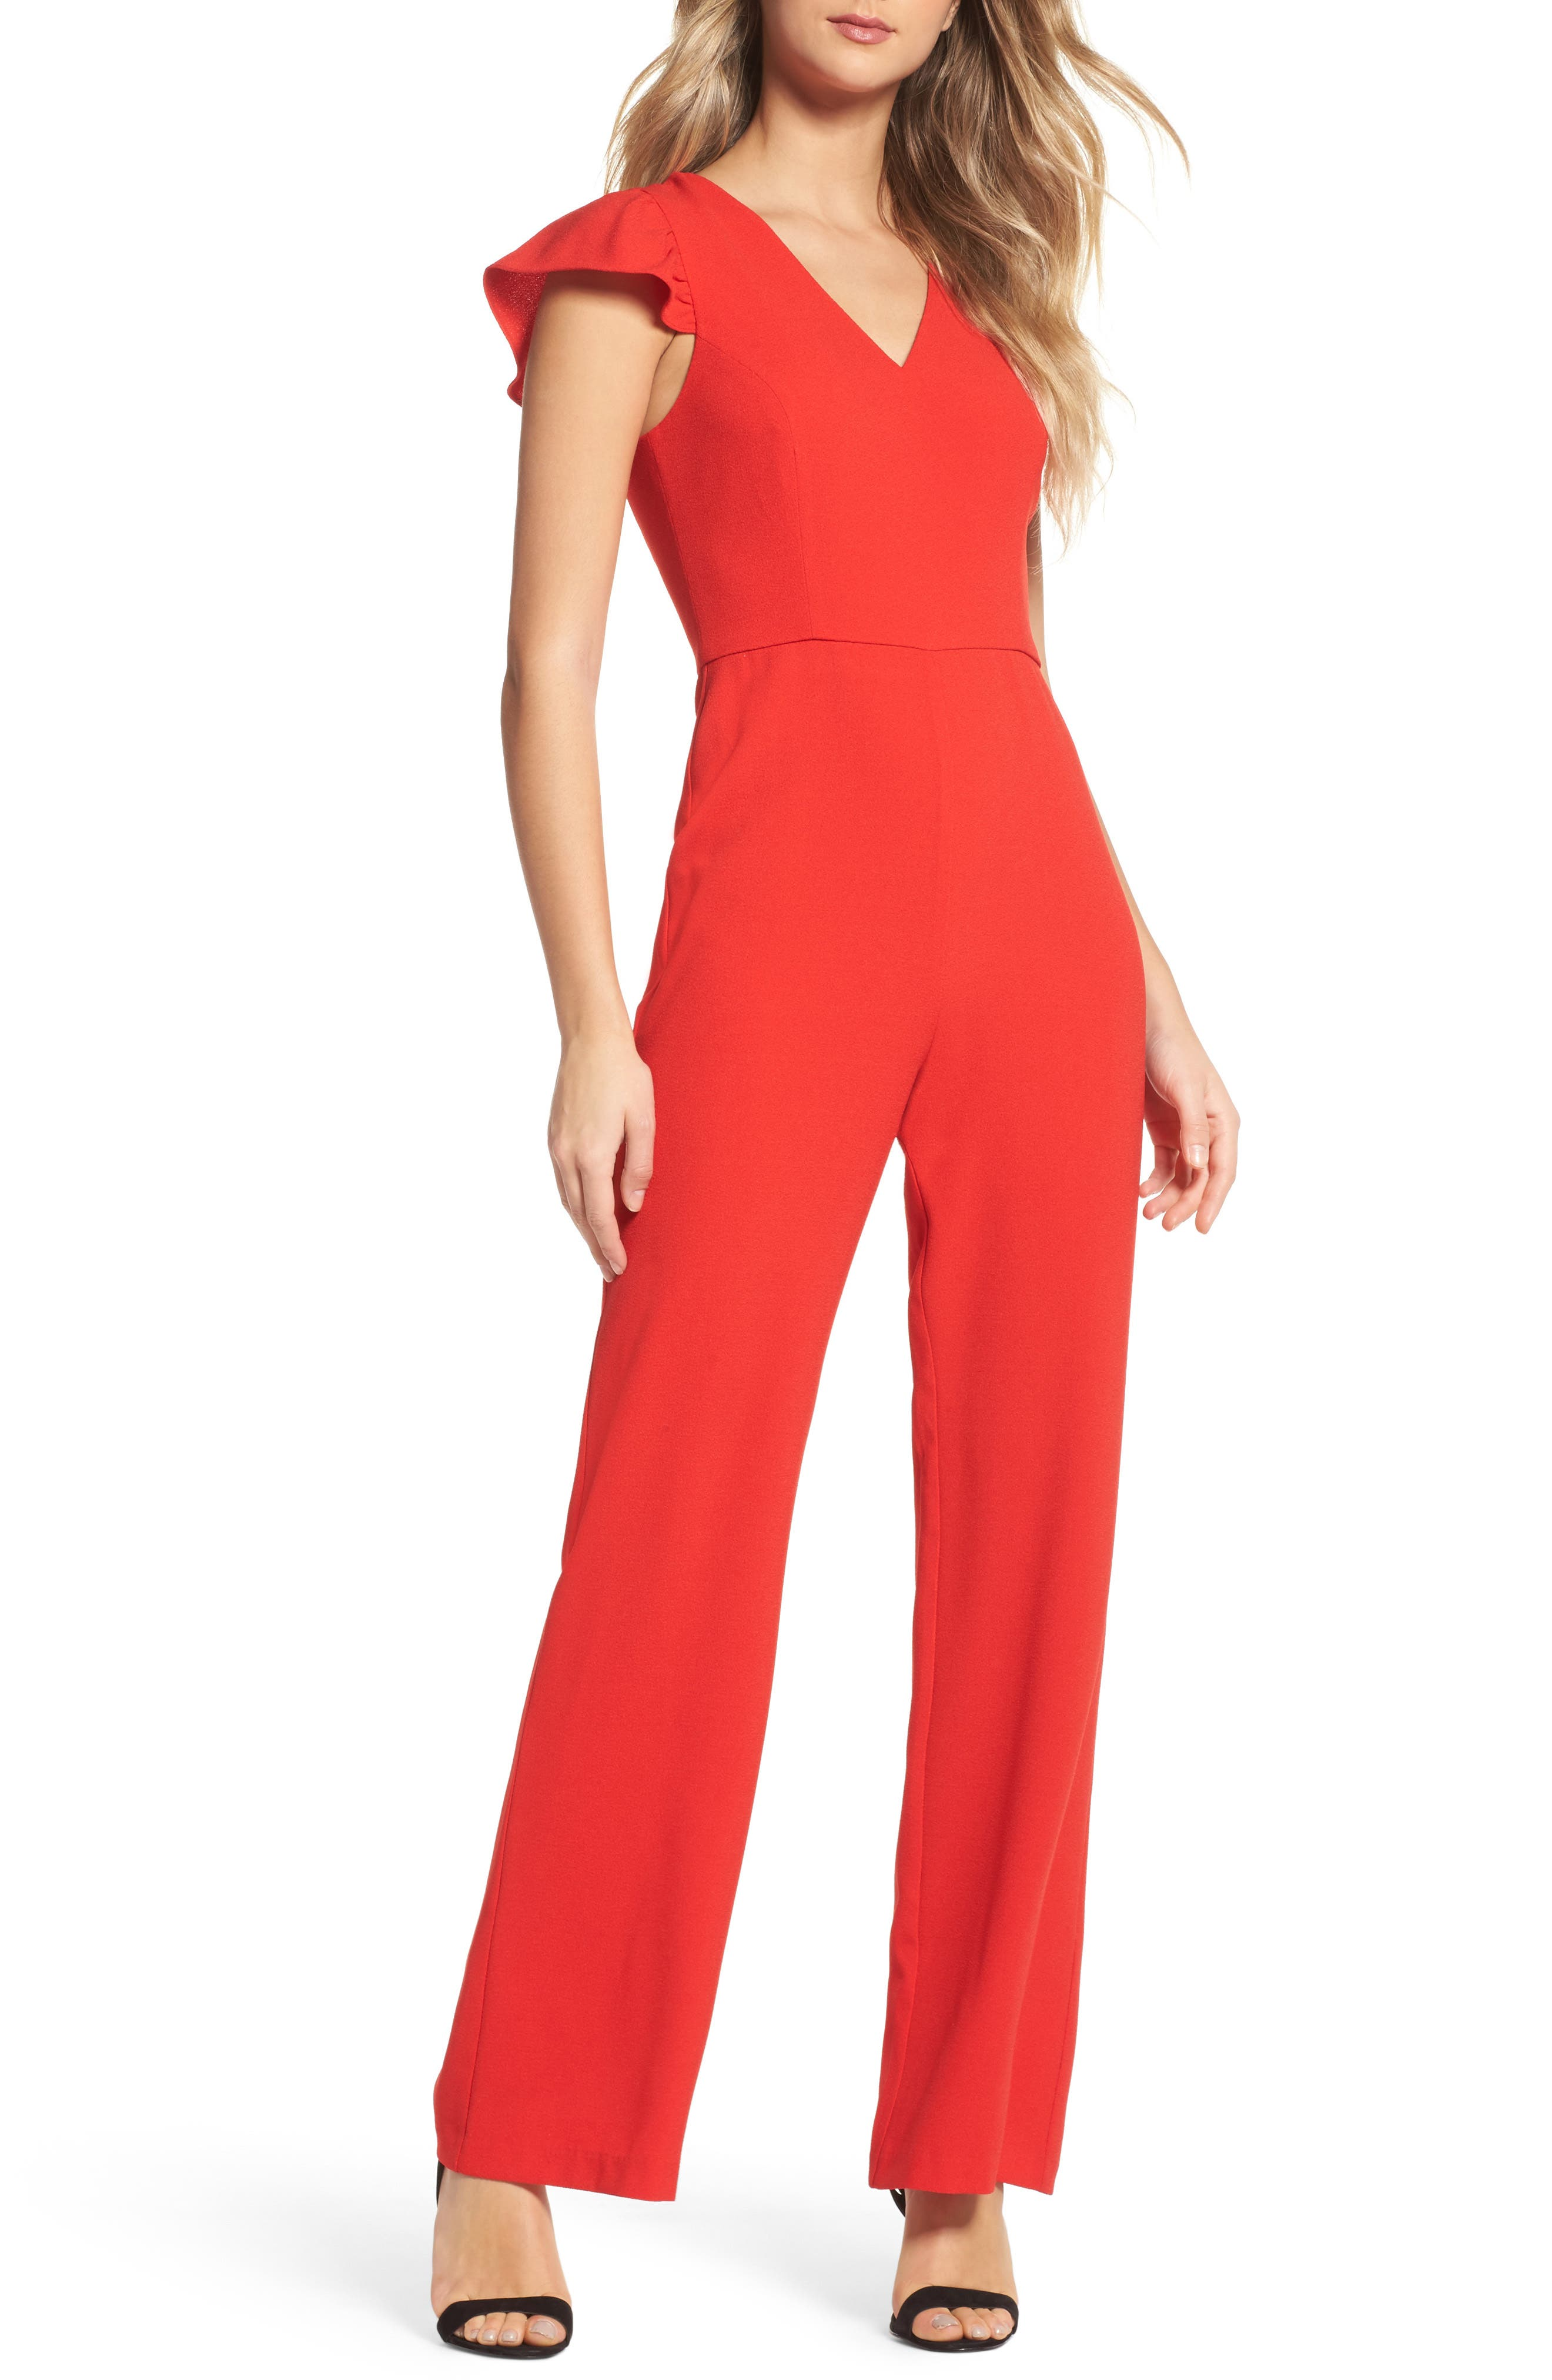 Ruffle Sleeve Jumpsuit,                         Main,                         color, Tomato Red